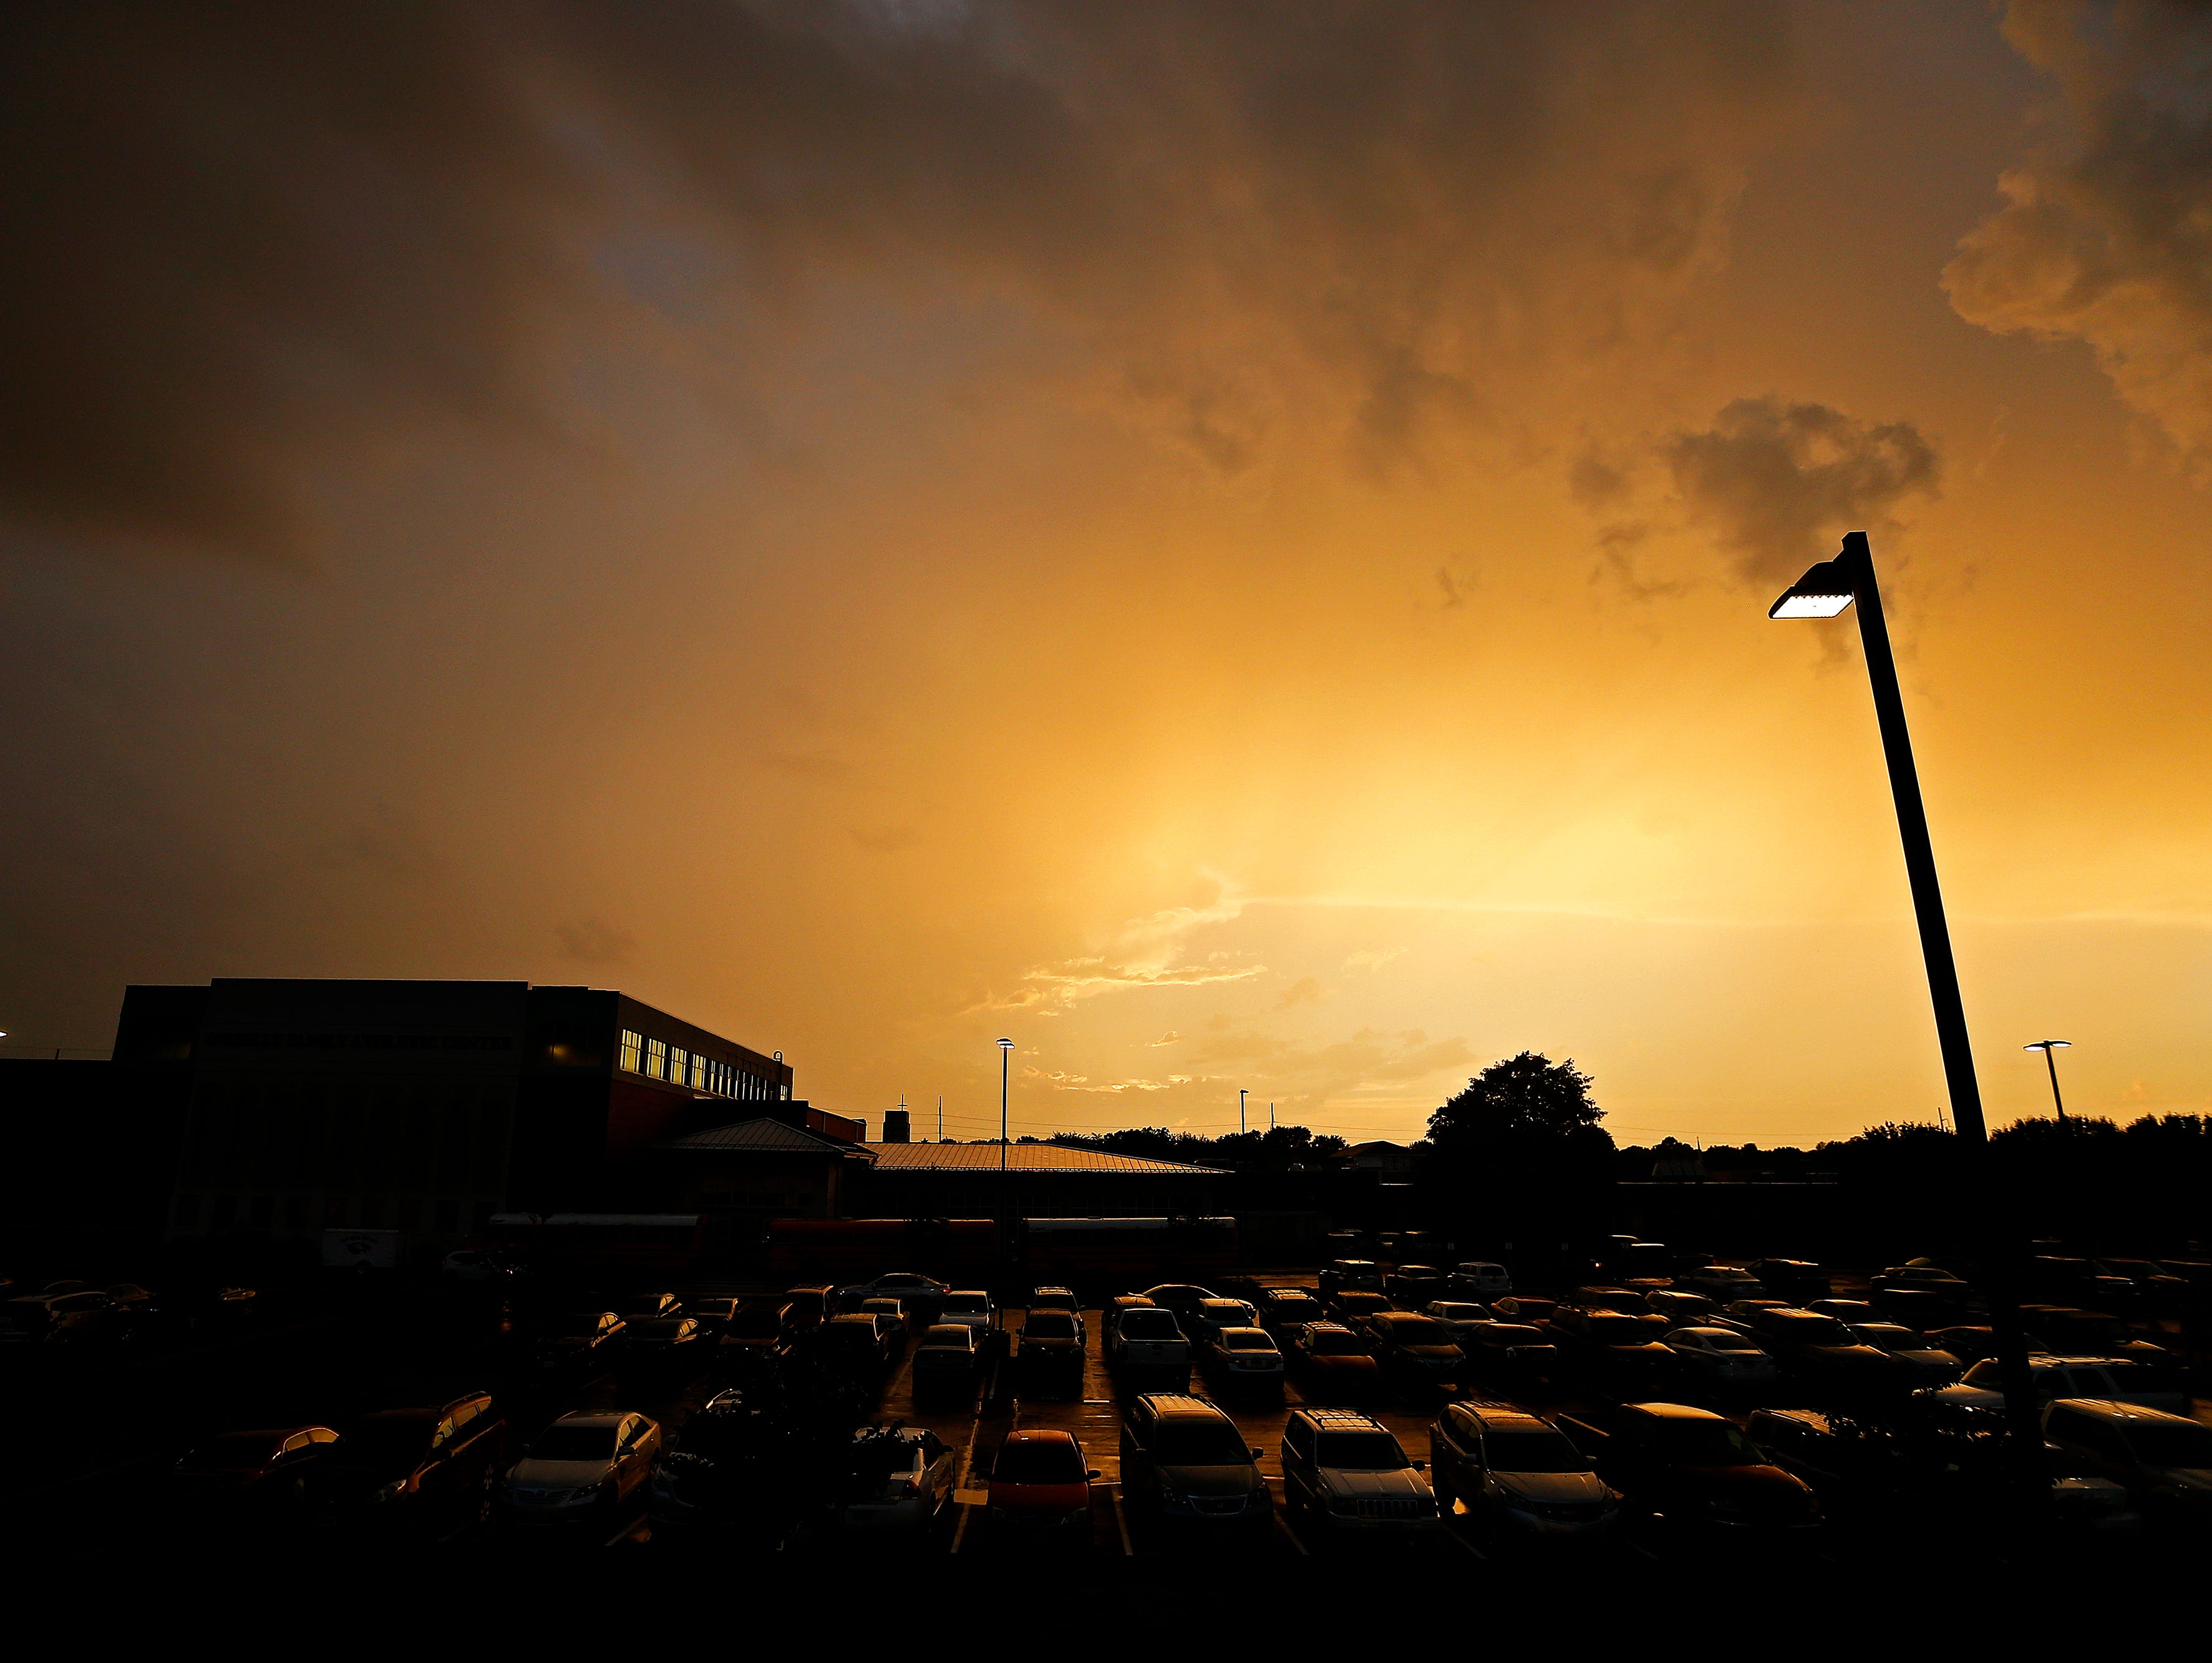 The Sun sets in between storm clouds to the West of a scheduled game between Springfield Catholic High School and Fair Grove High School at Springfield Catholic High School in Springfield, Mo. on Sept. 9, 2016. The game was postponed due to severe weather in the area.